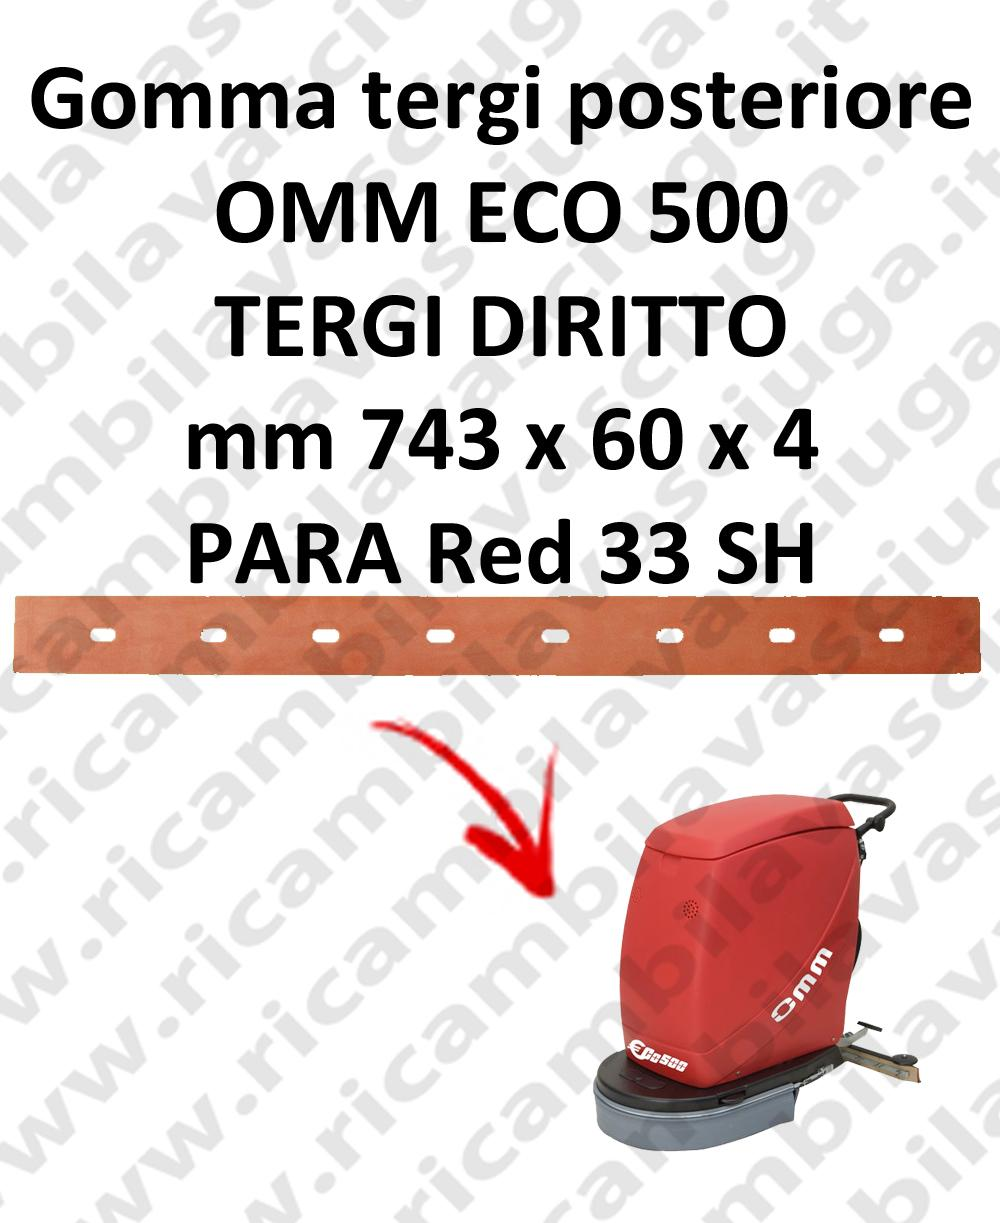 ECO 500 Back Squeegee rubber for squeegee straight OMM